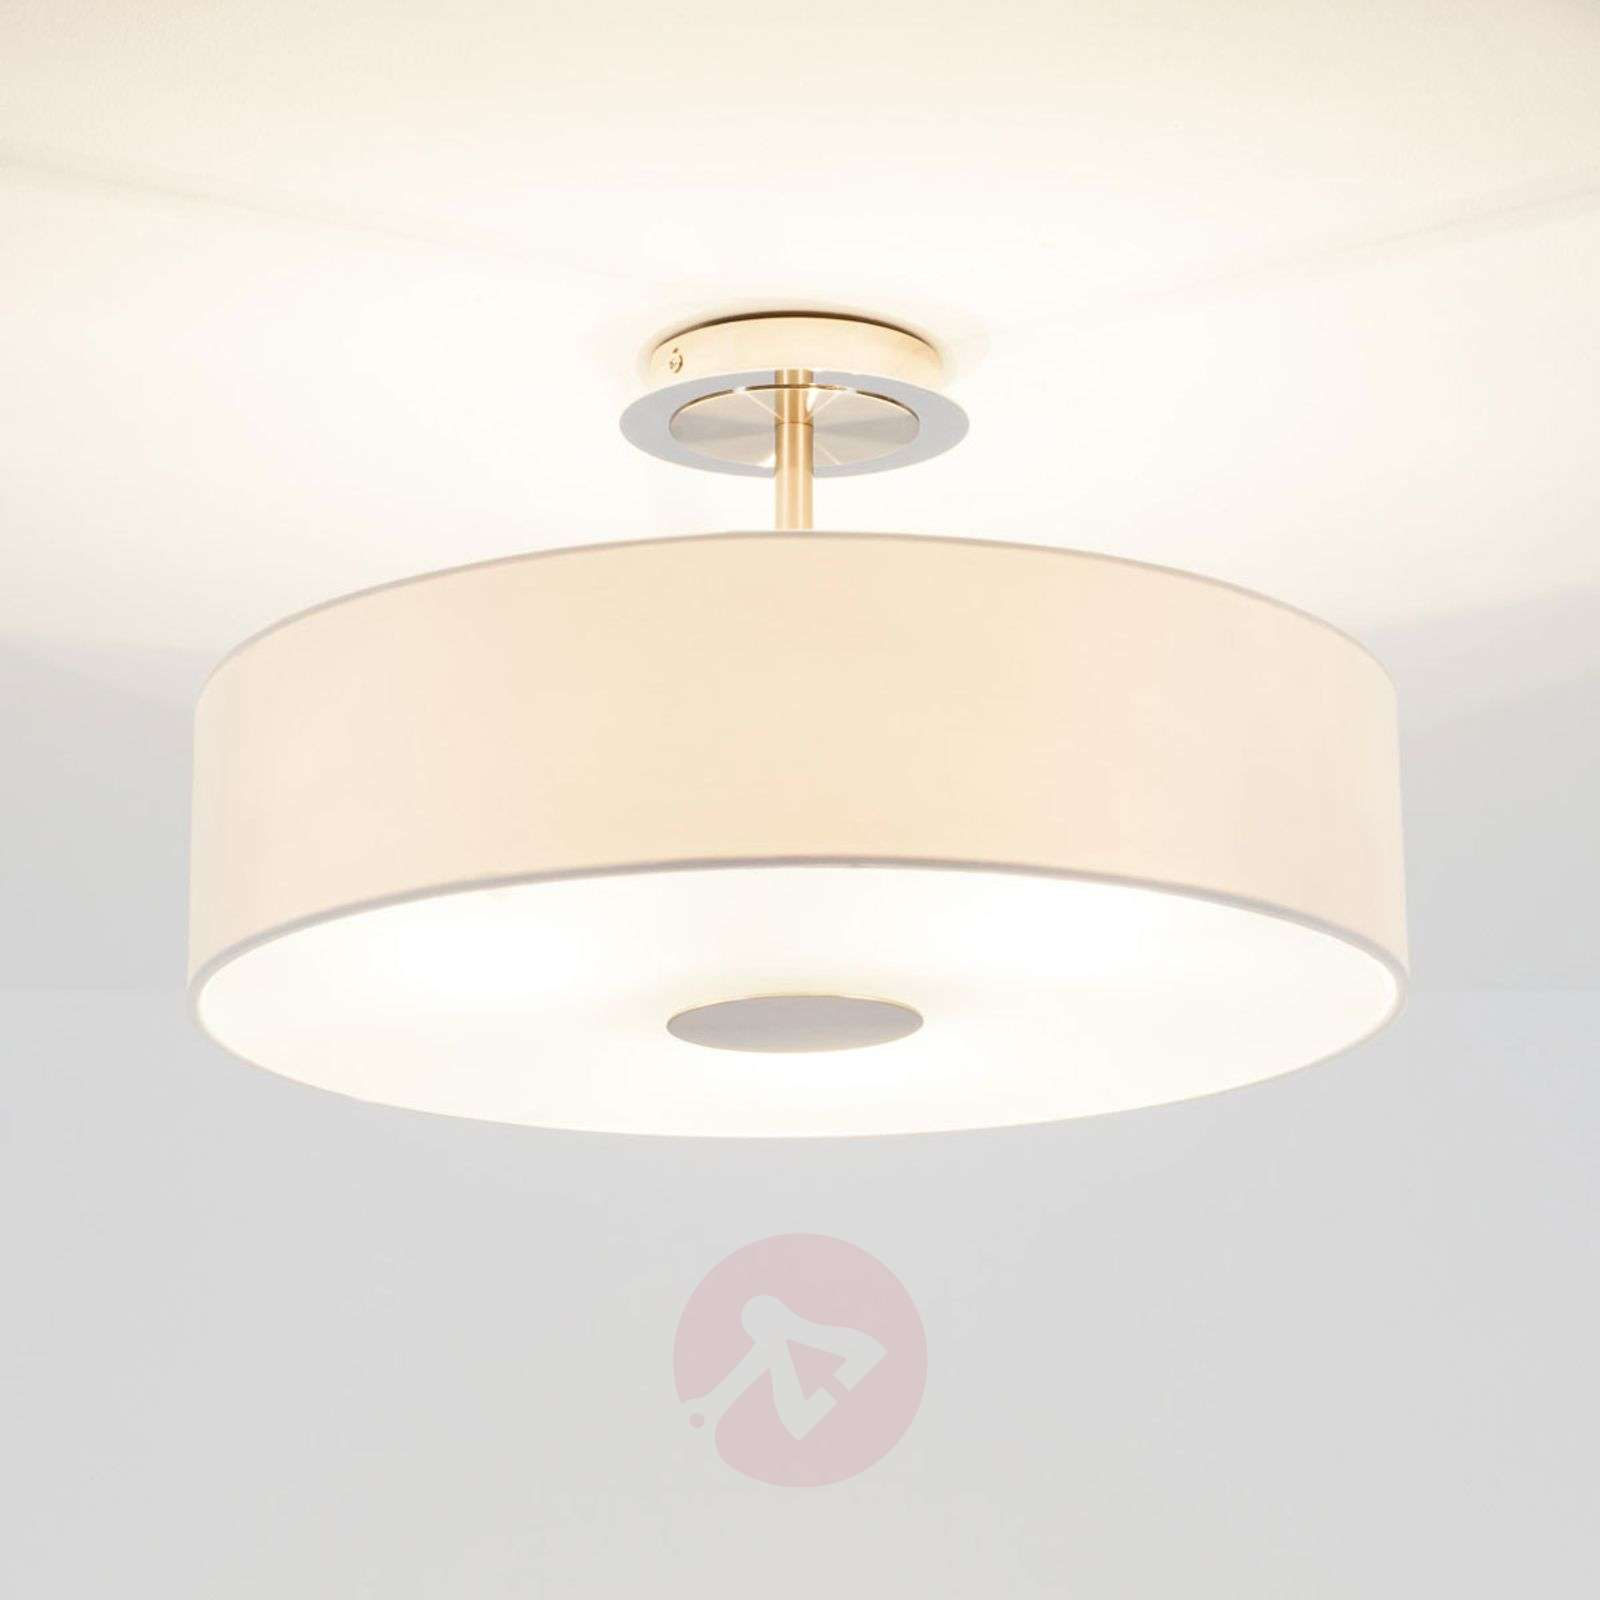 Textile ceiling lights buy online top designs lights timeless ceiling light josia made of white fabric aloadofball Choice Image